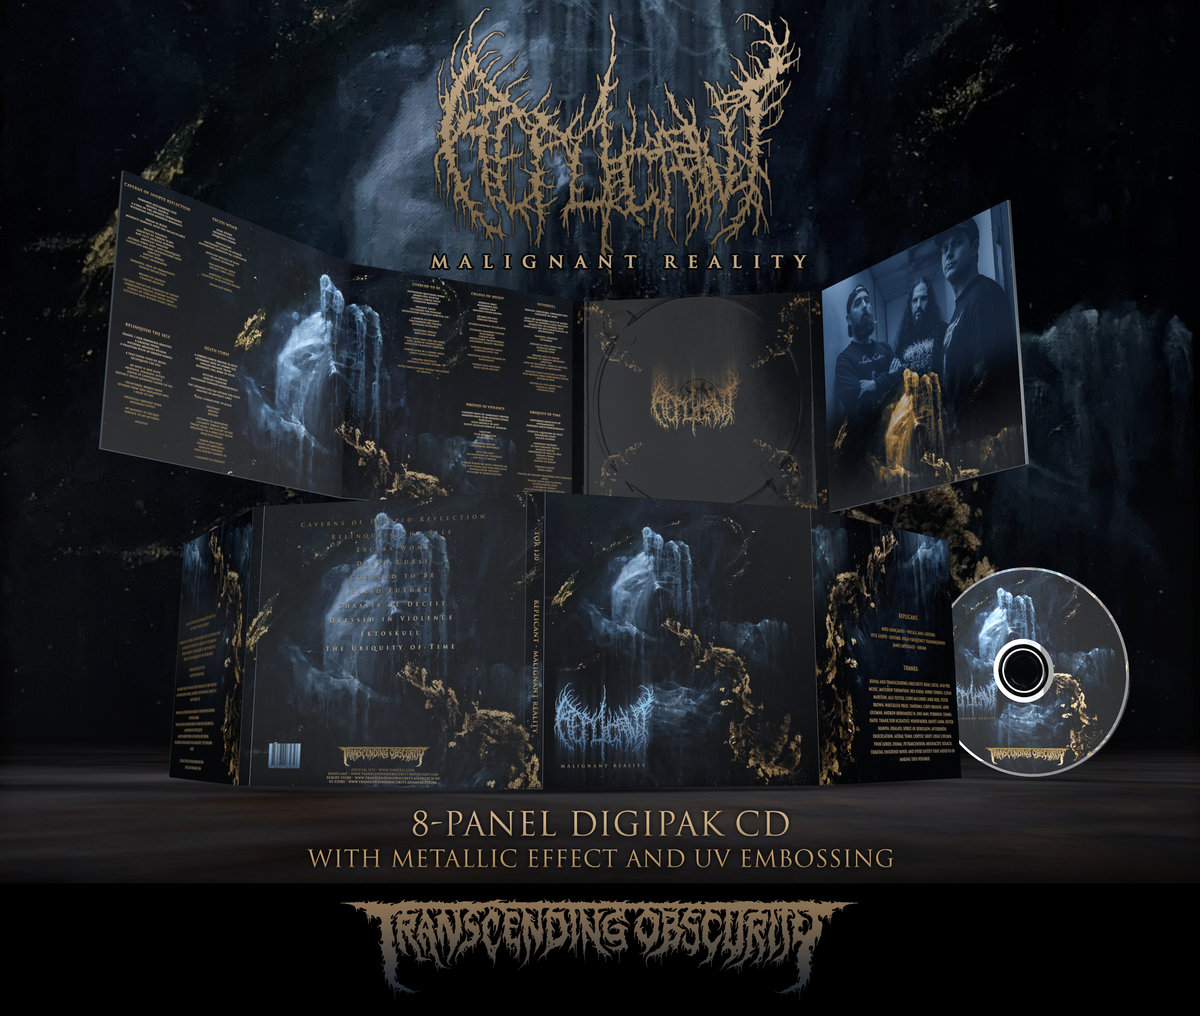 REPLICANT - Malignant Reality 8-Panel Digipak CD with Metallic Effect and UV Embossing